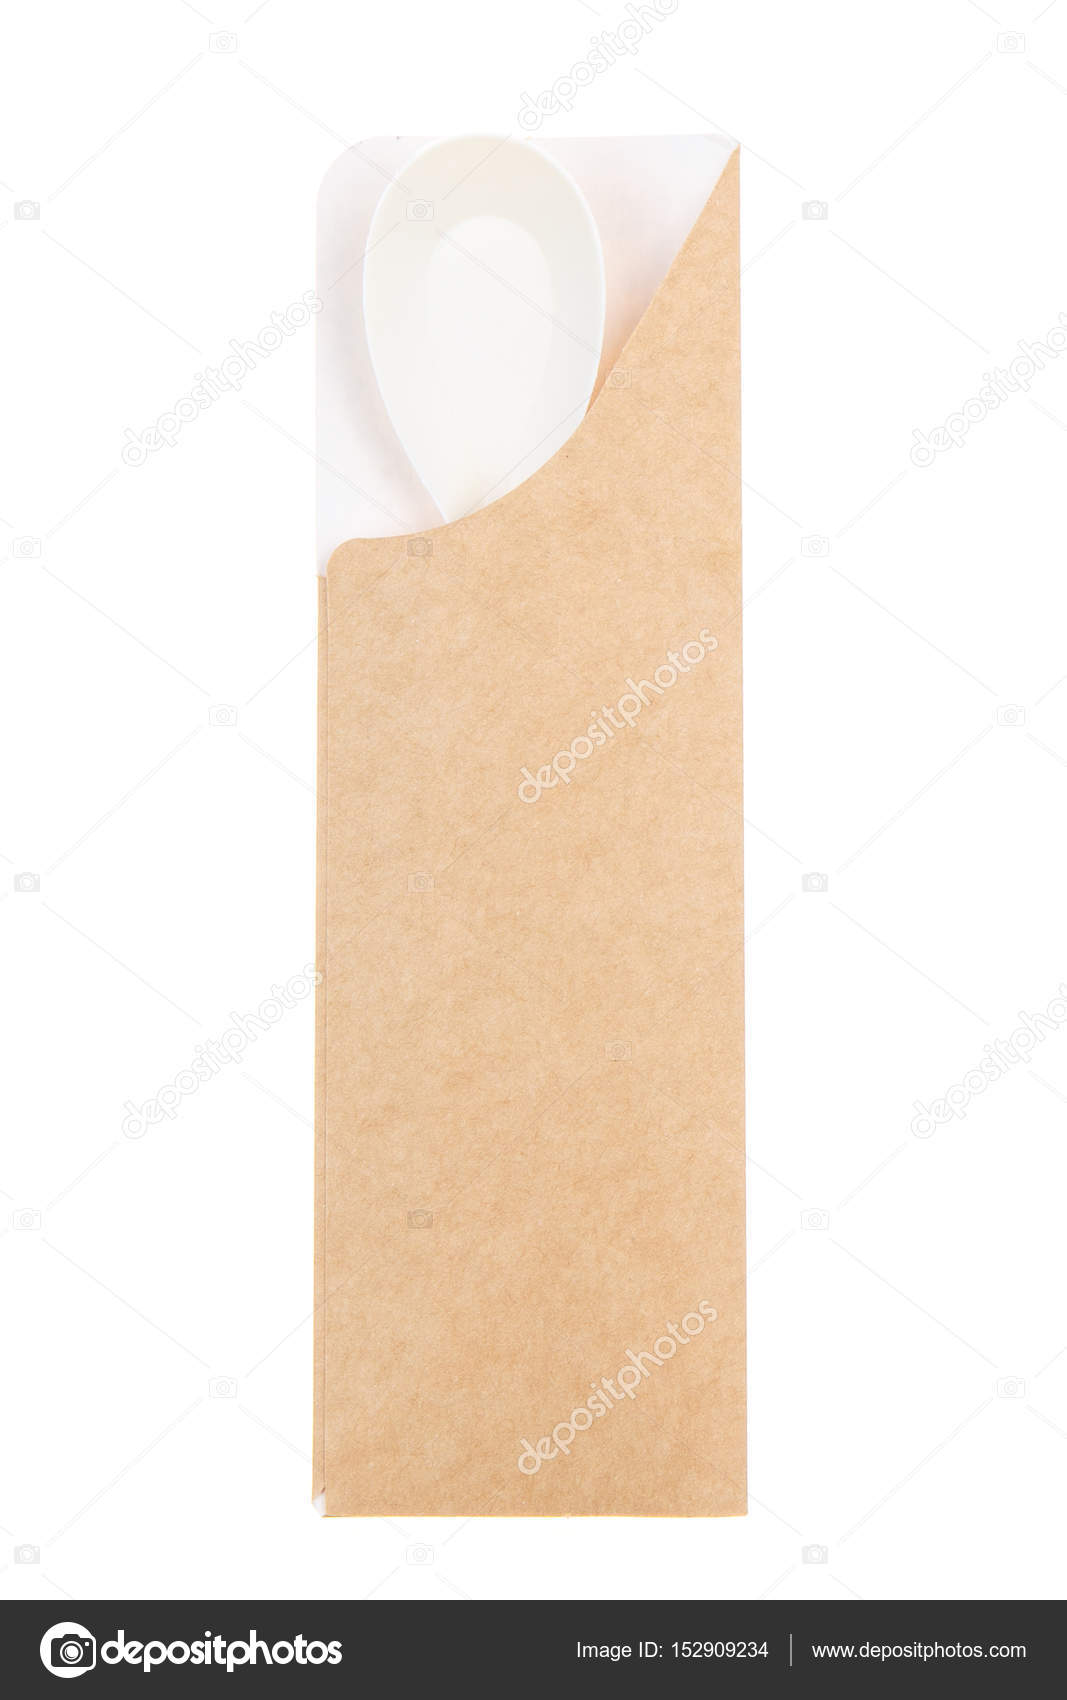 Plastic Spoon Packaging From Recycled Paper Stock Photo